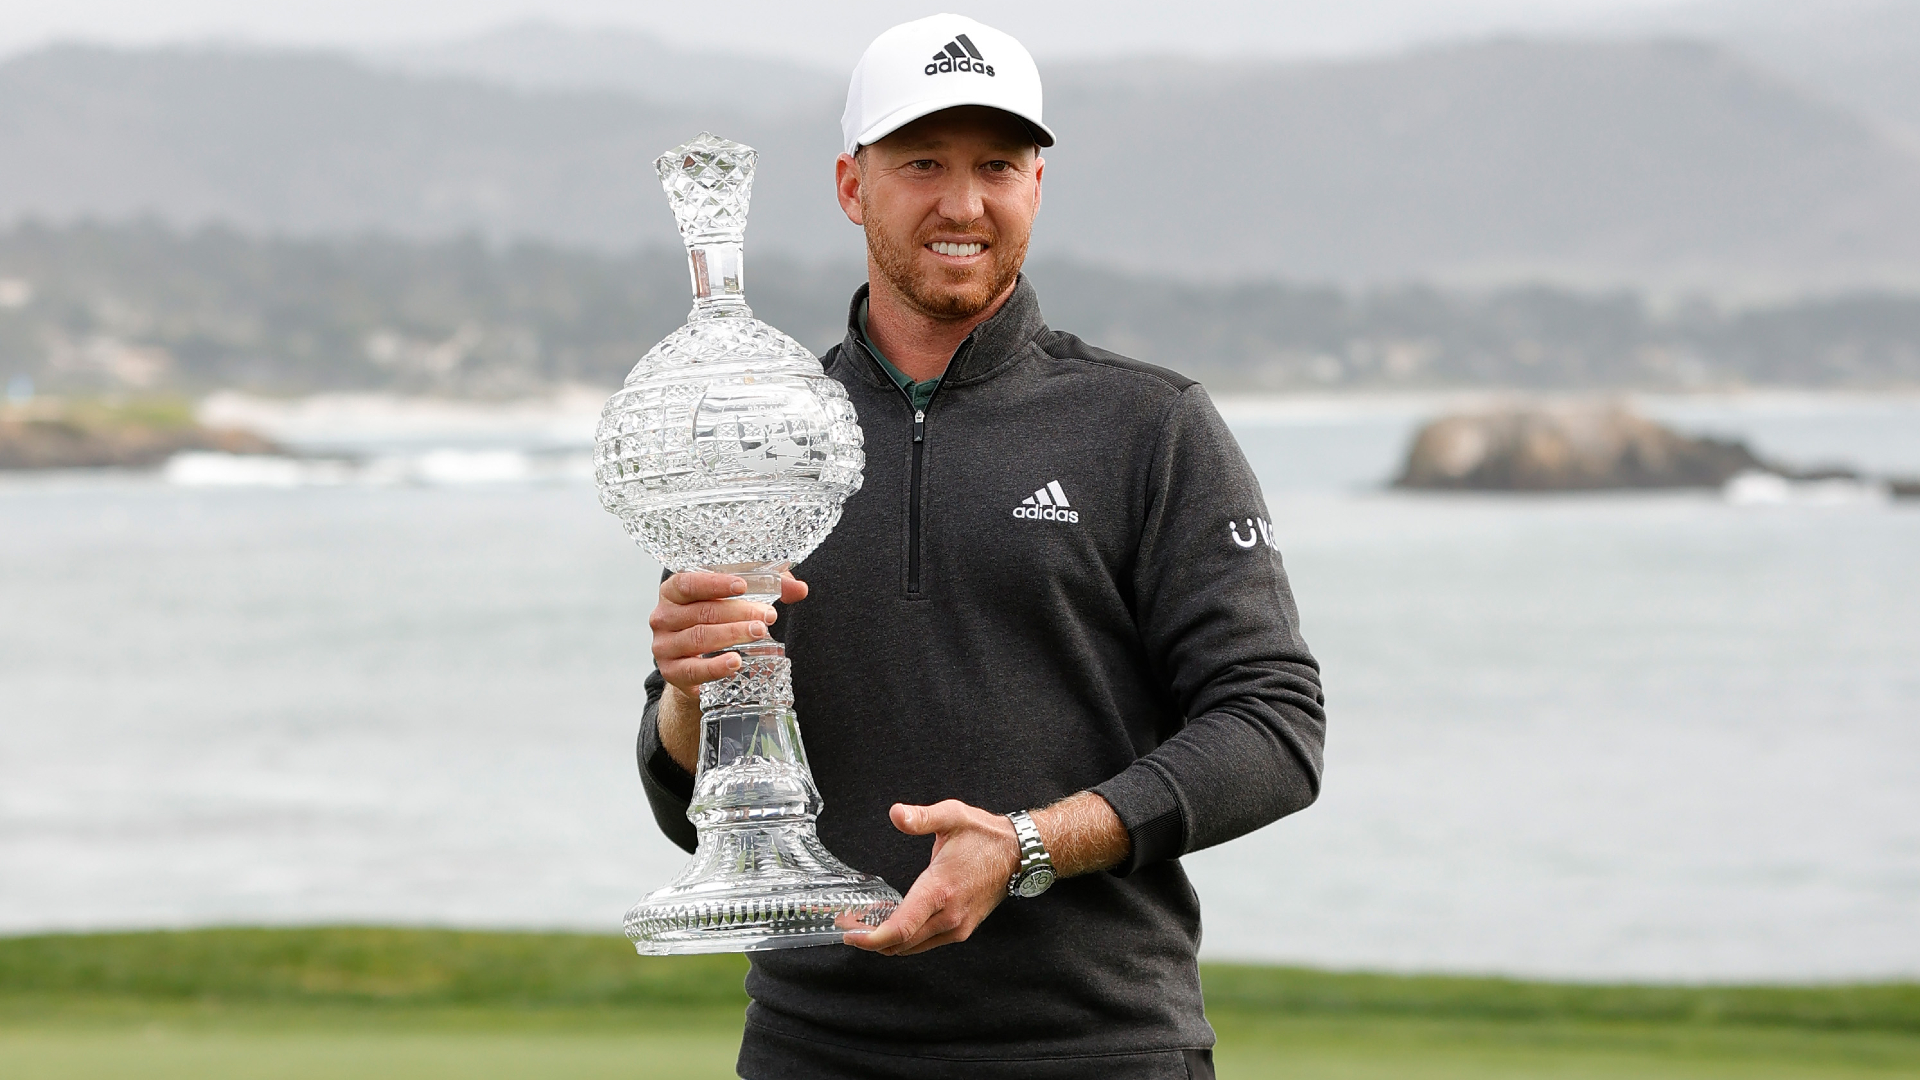 Berger wins at Pebble Beach as Spieth's wait goes on